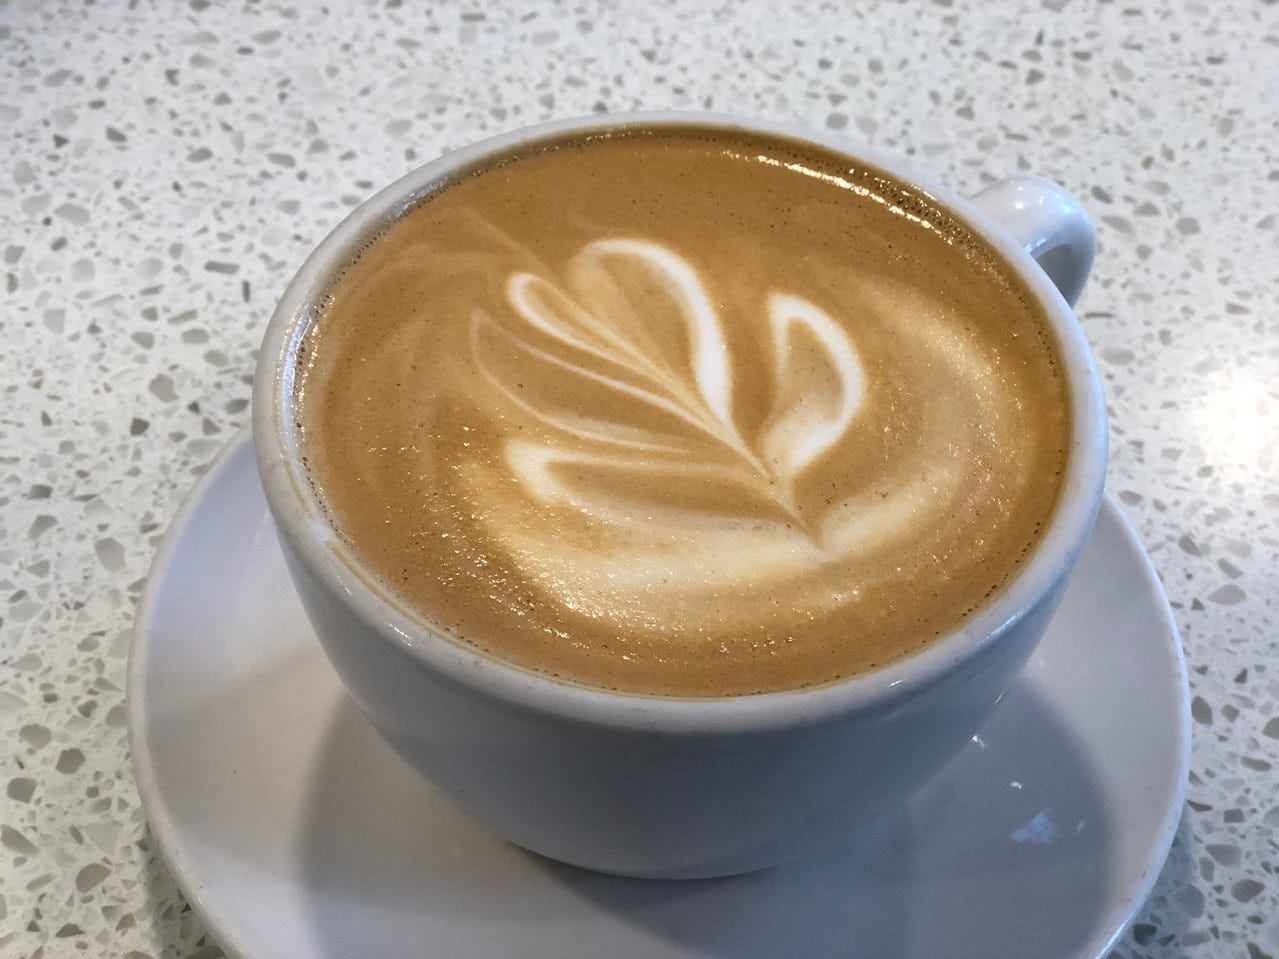 A latte at the Coffee Bar in downtown Redding.